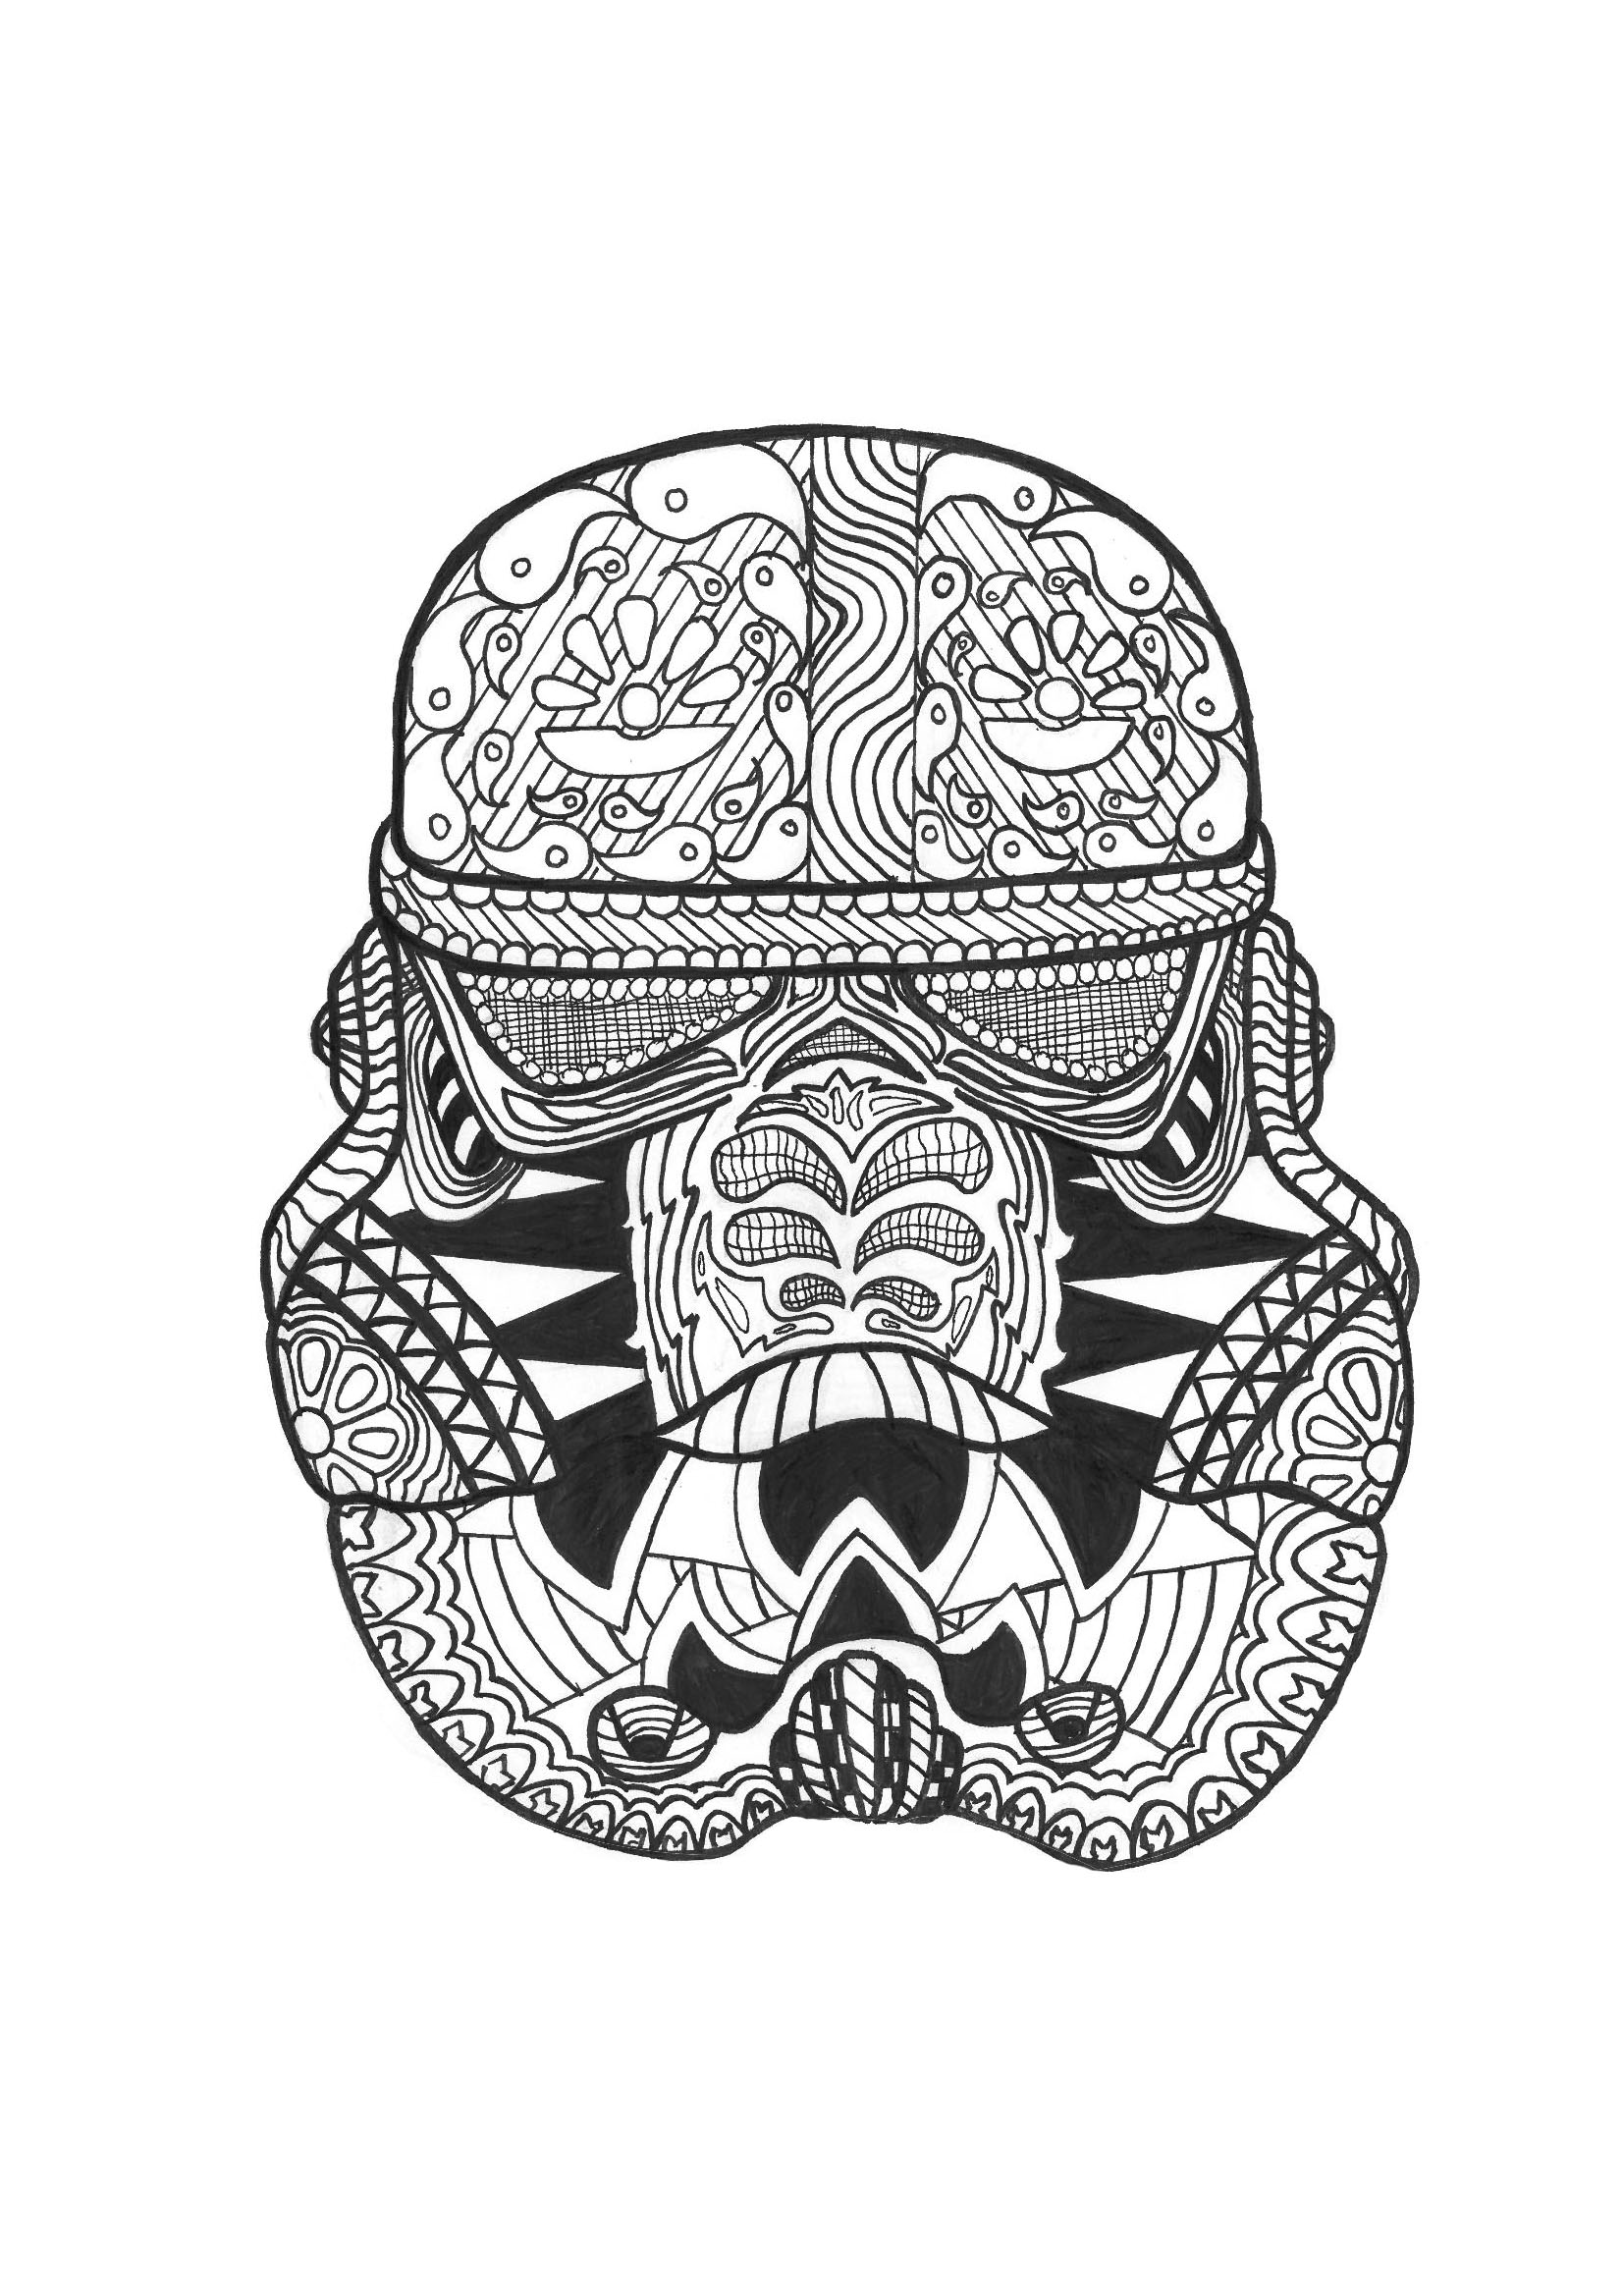 Zen Stormtrooper Anti Stress Adult Coloring Pages